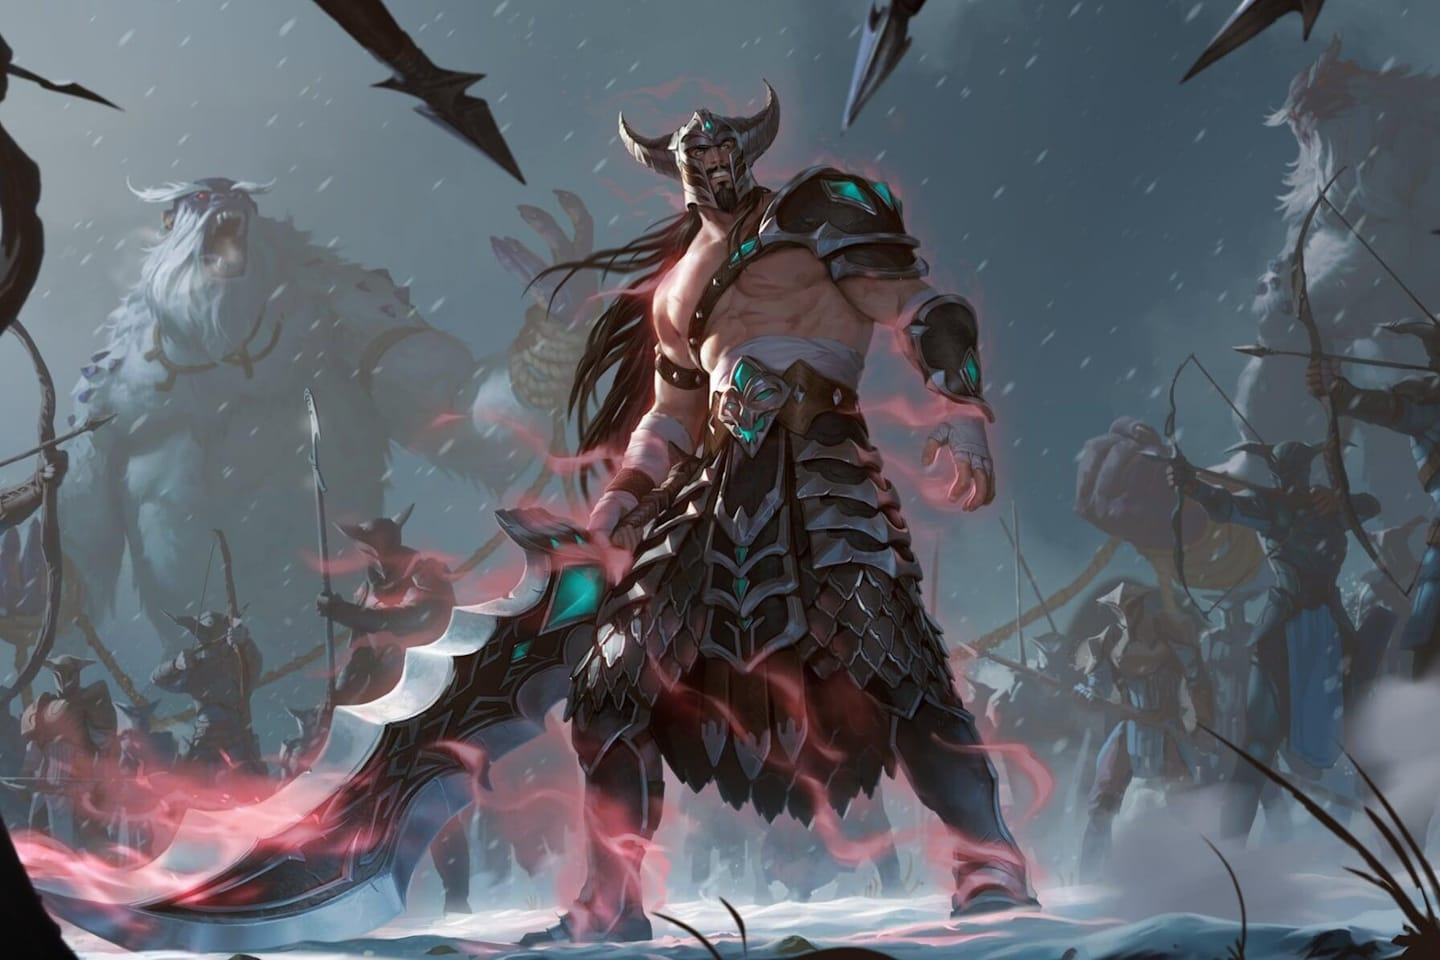 League of Legends character Tryndamere in Legends of Runeterra